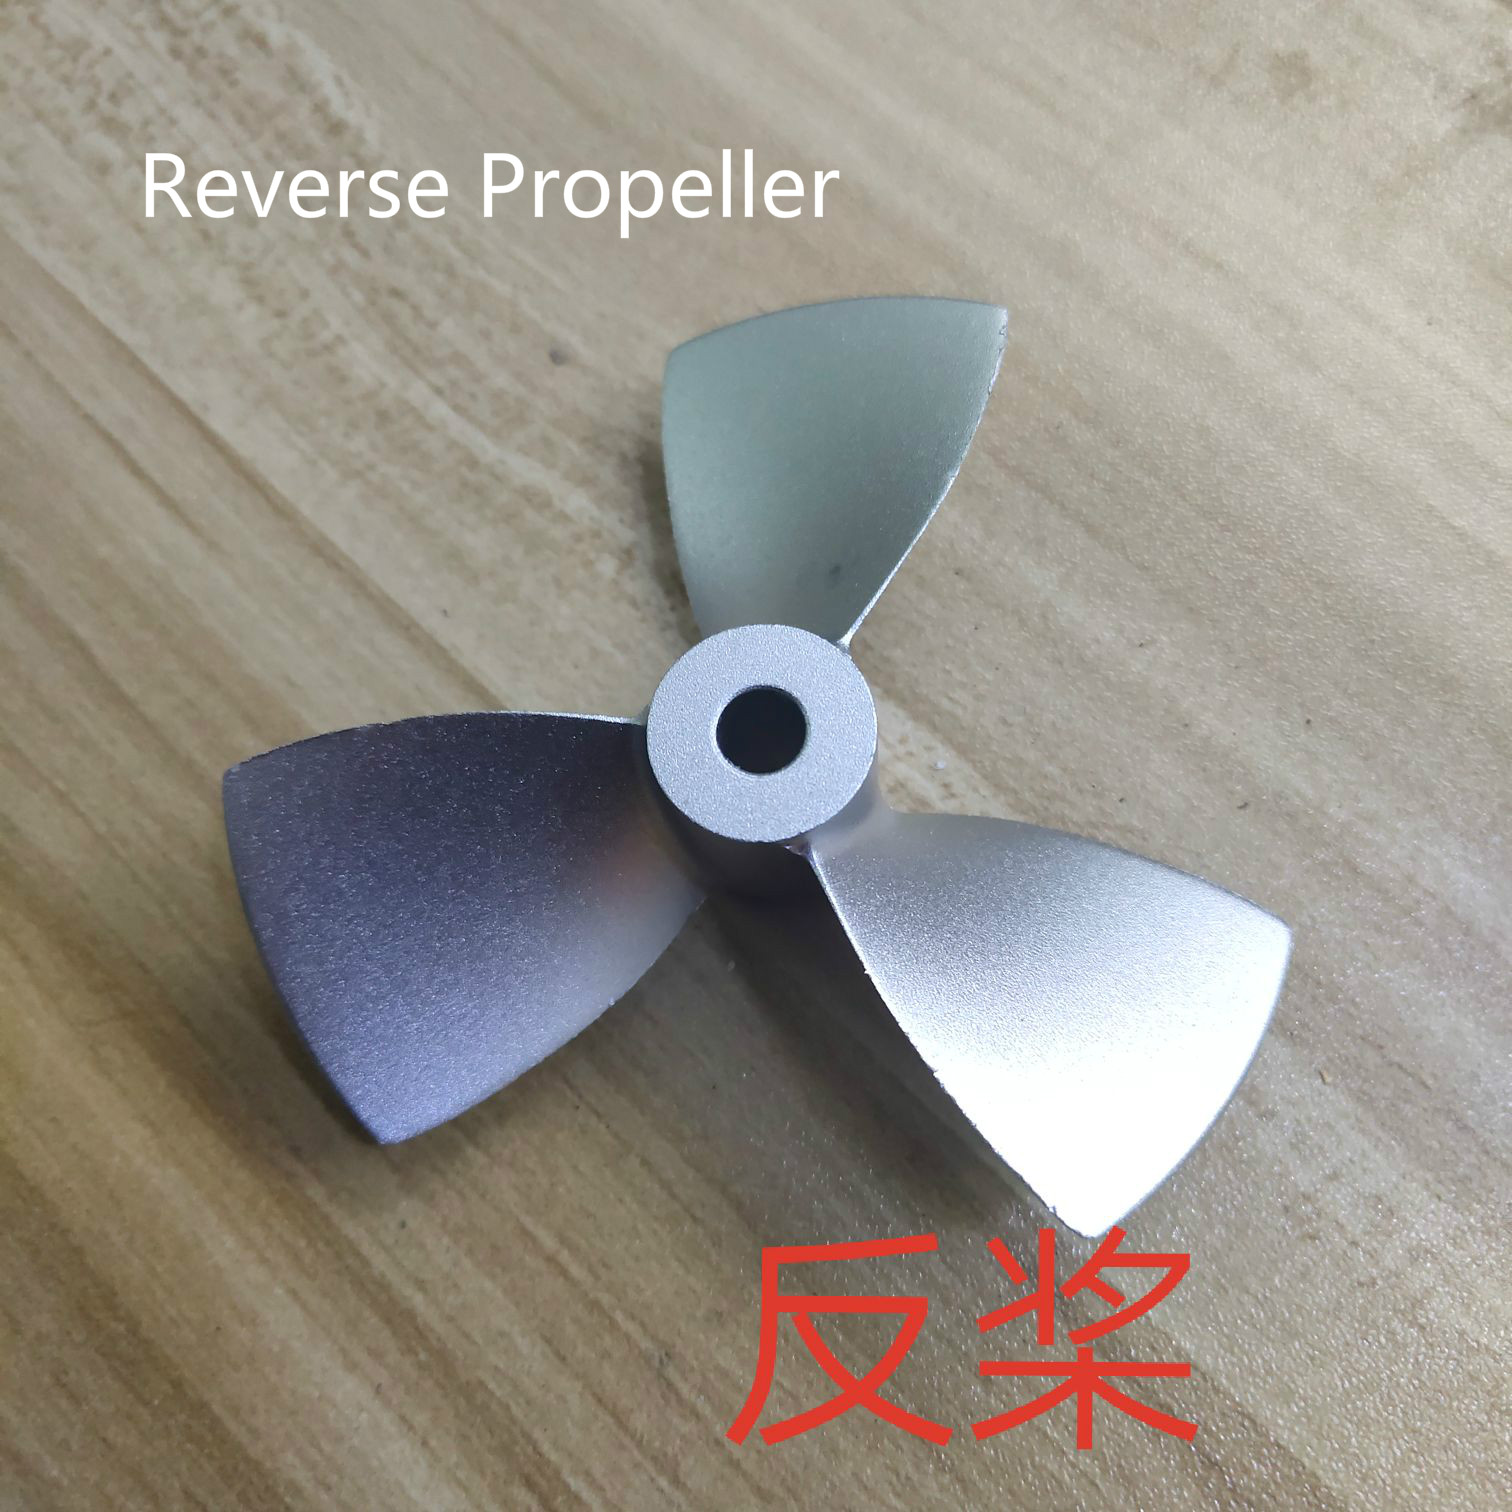 Positive Propeller and Reverse Propeller